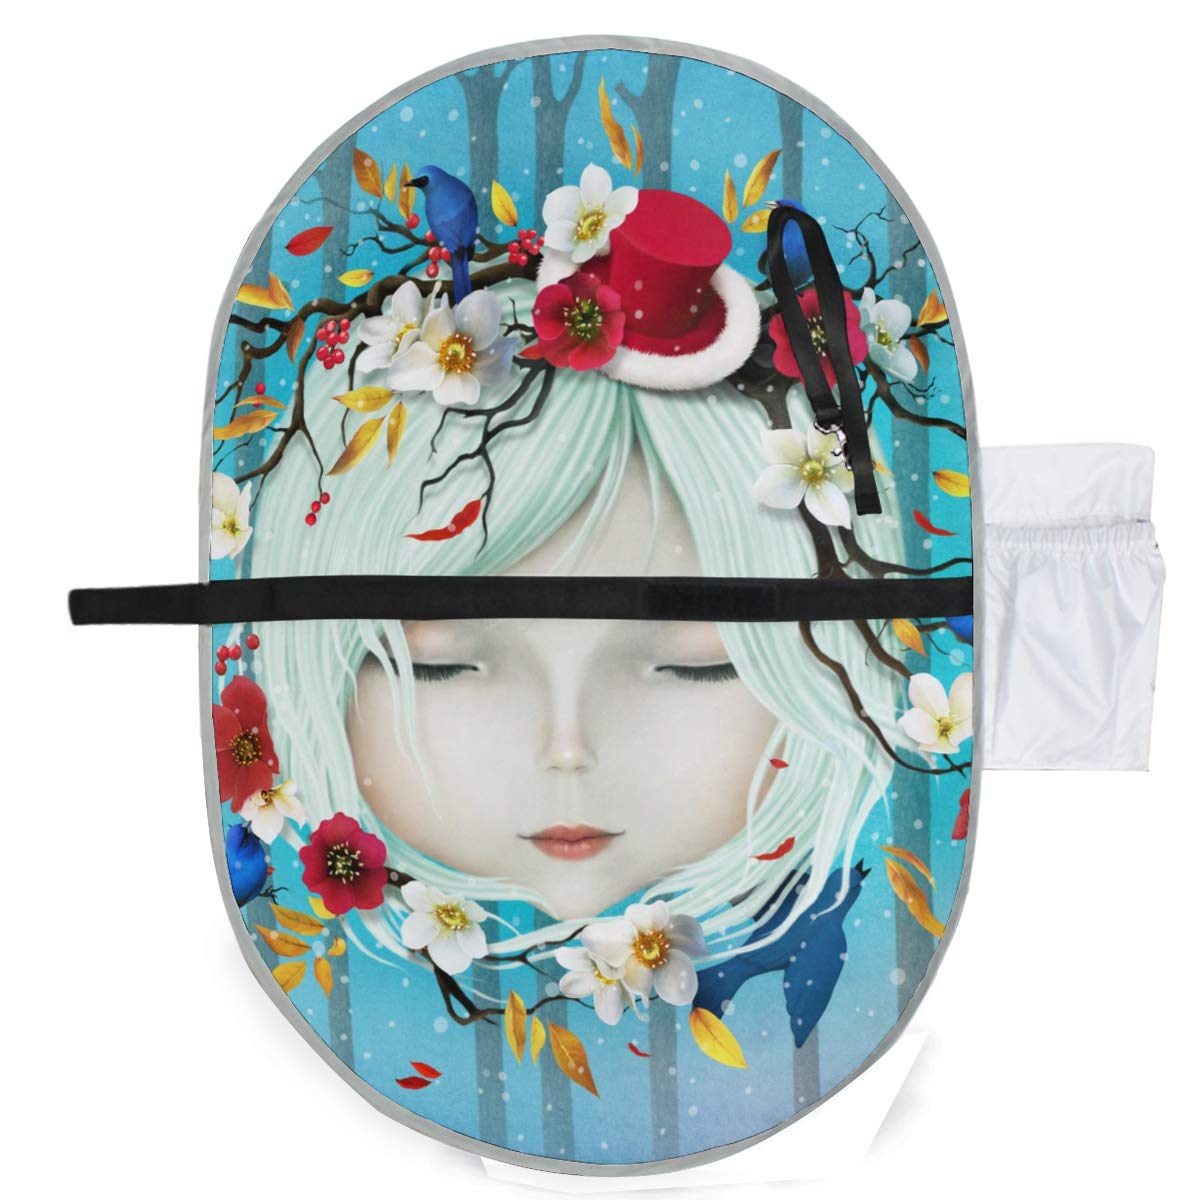 Waterproof Washable Baby Diaper Changing Pad Mat Girl Flowers Portable and Foldable Infant Large Nappy Mat 27x20 inch